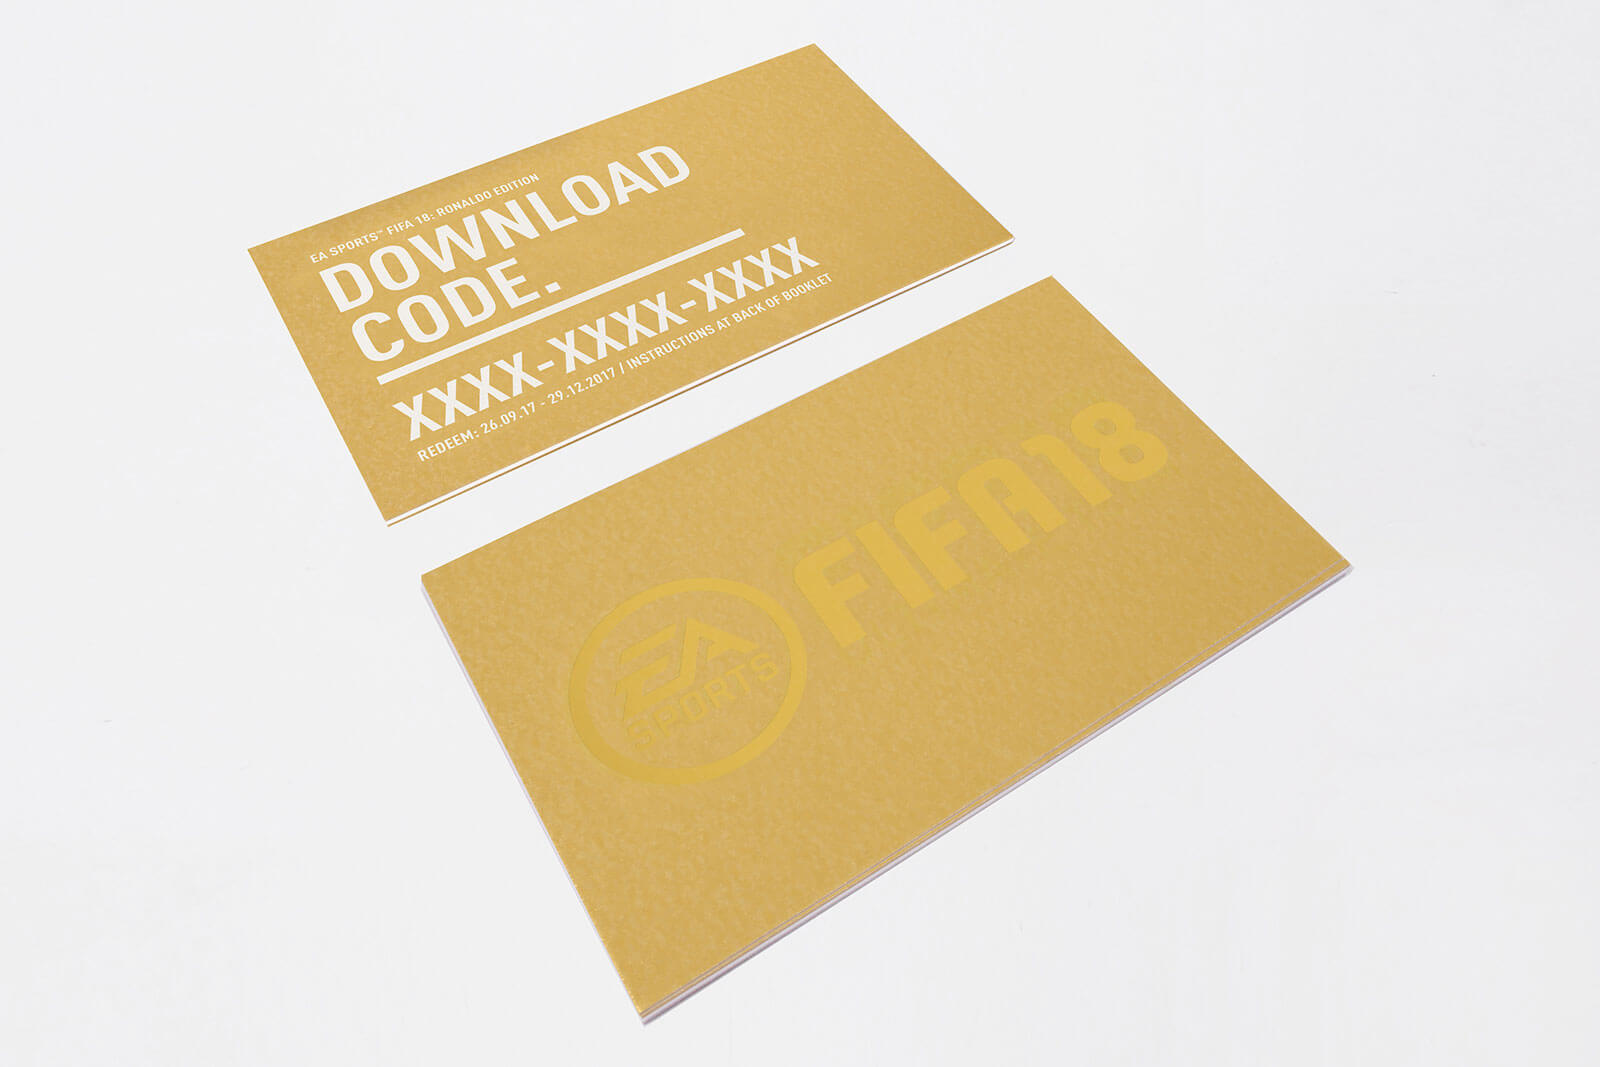 FIFA 18: Media Kit - Voucher Cards